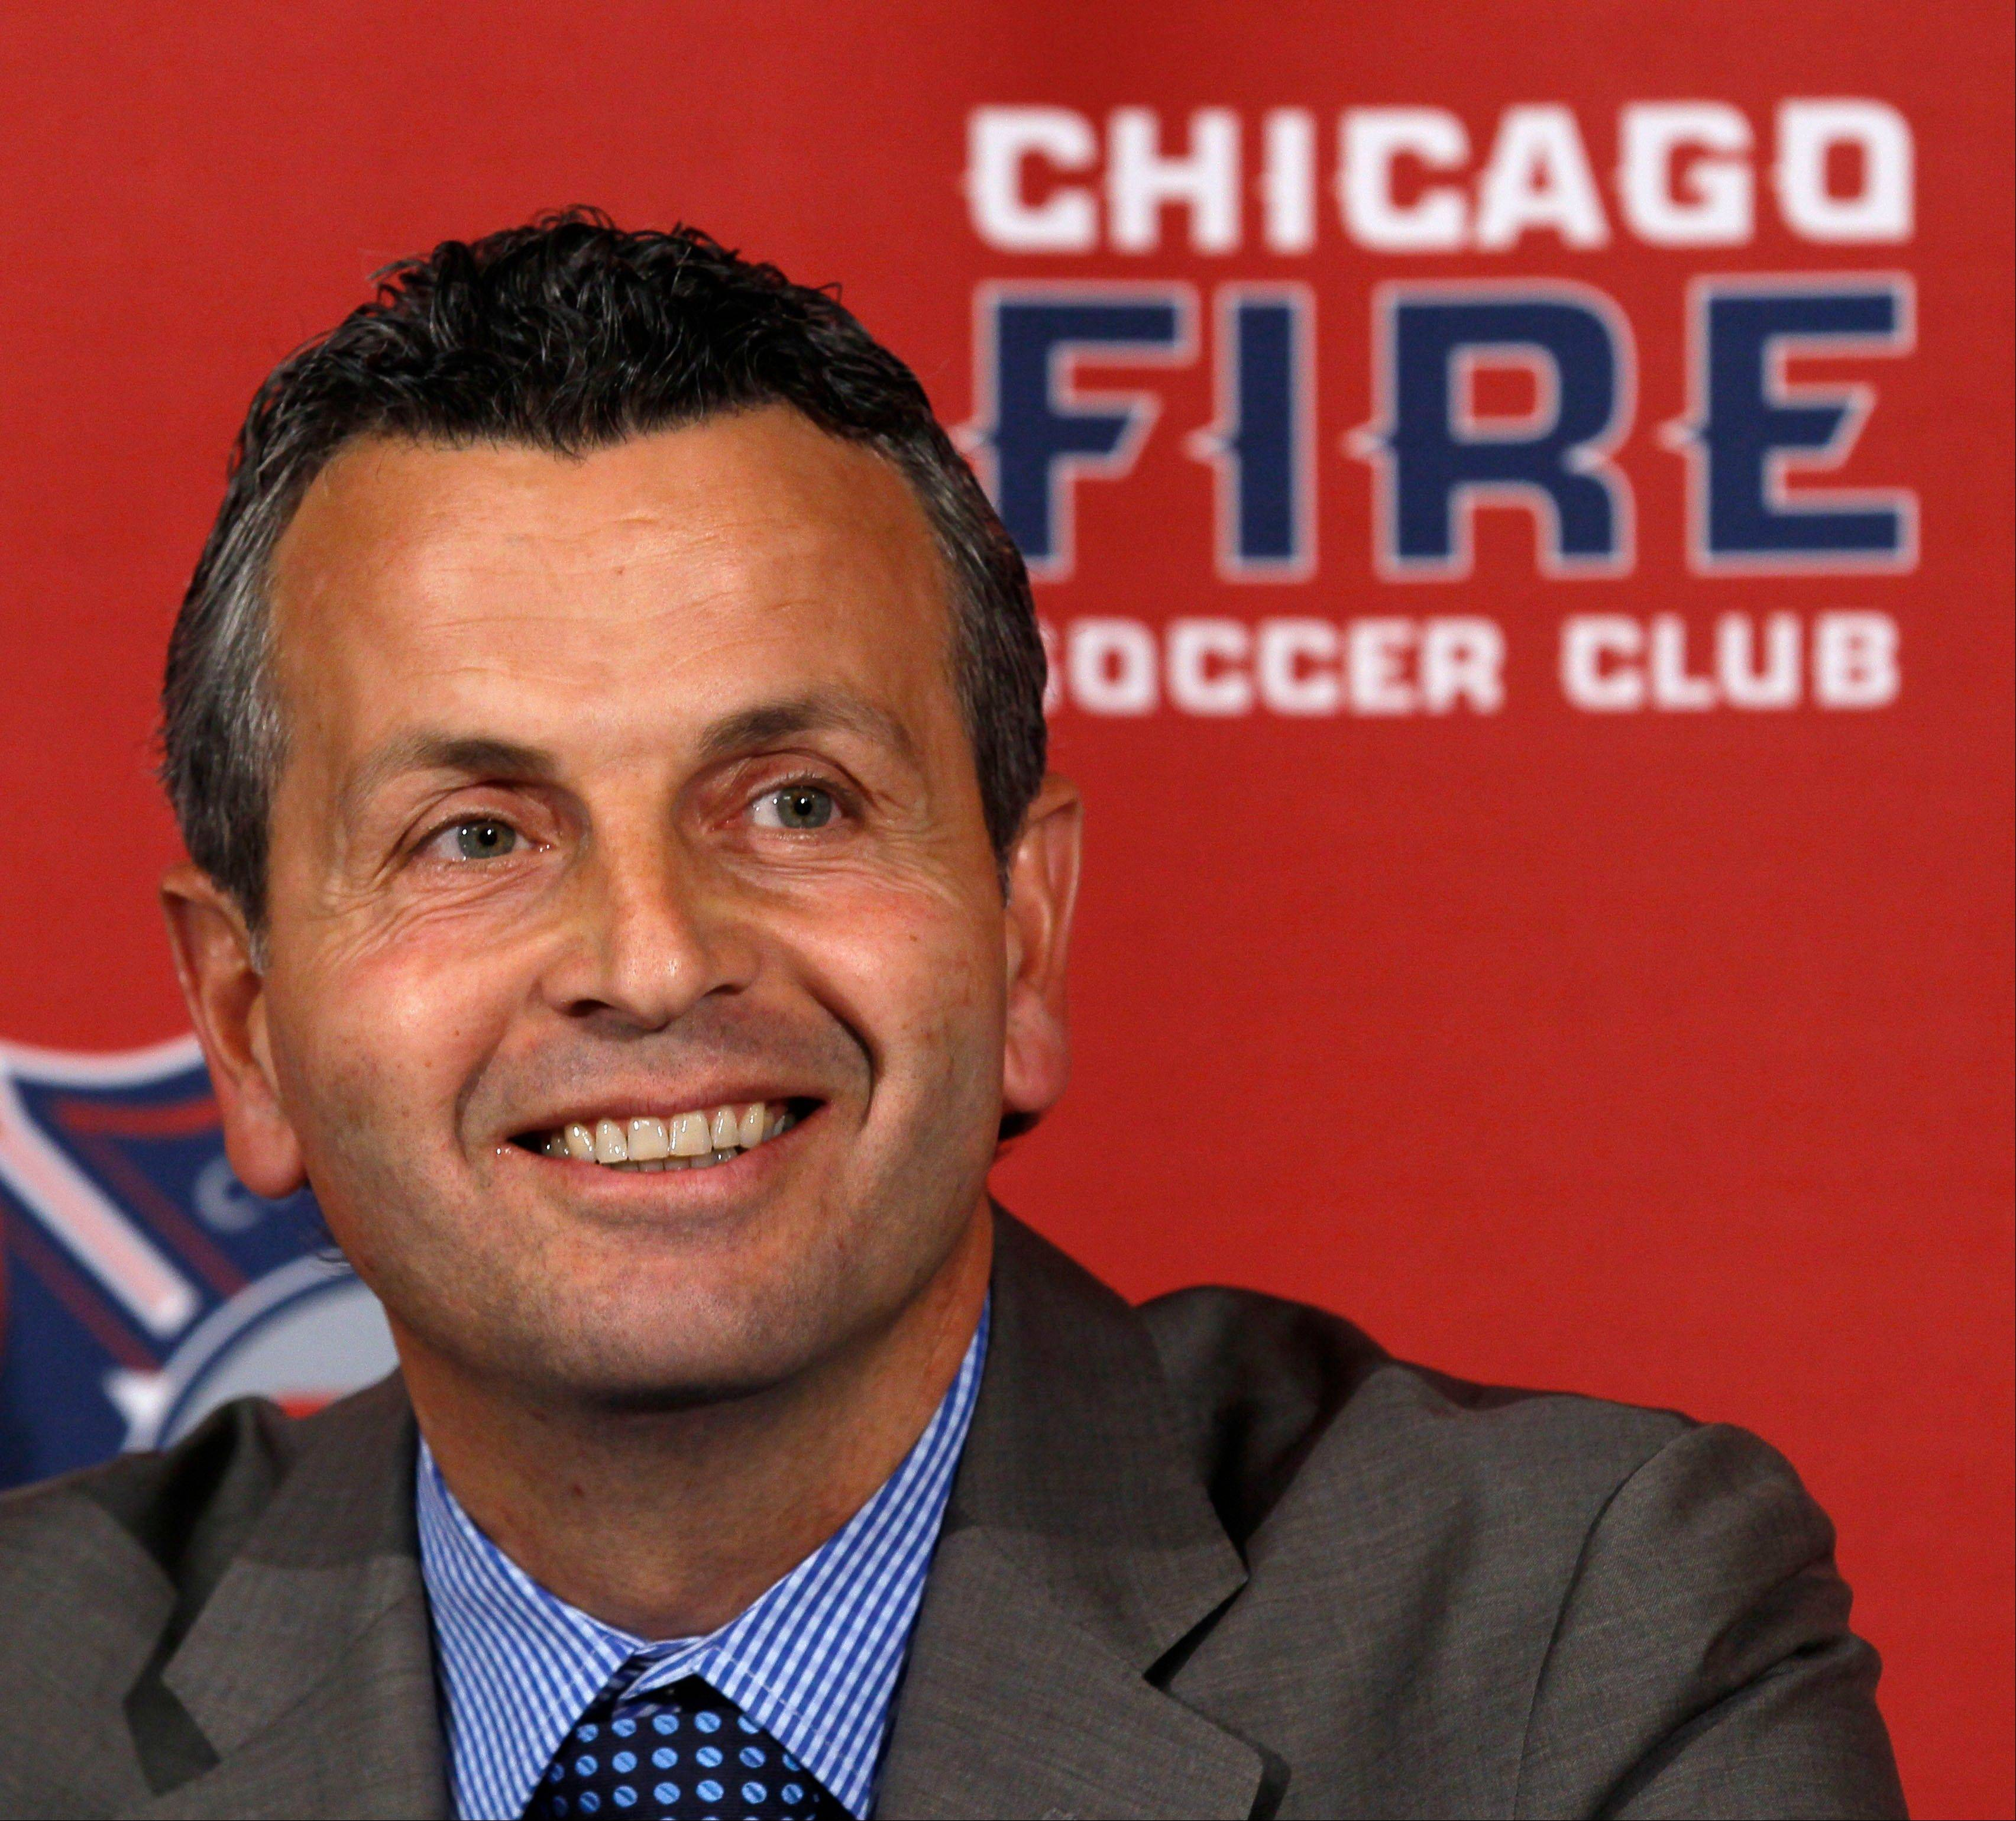 Frank Klopas smiles after being named head coach of the Chicago Fire MLS soccer team during a news conference at Toyota Park, Thursday, Nov. 3, 2011, in Bridgeview, Ill. Klopas was picked as the Fire's head coach on Thursday, five months after he got the job on an interim basis when the Major League Soccer club got off to a bad start.